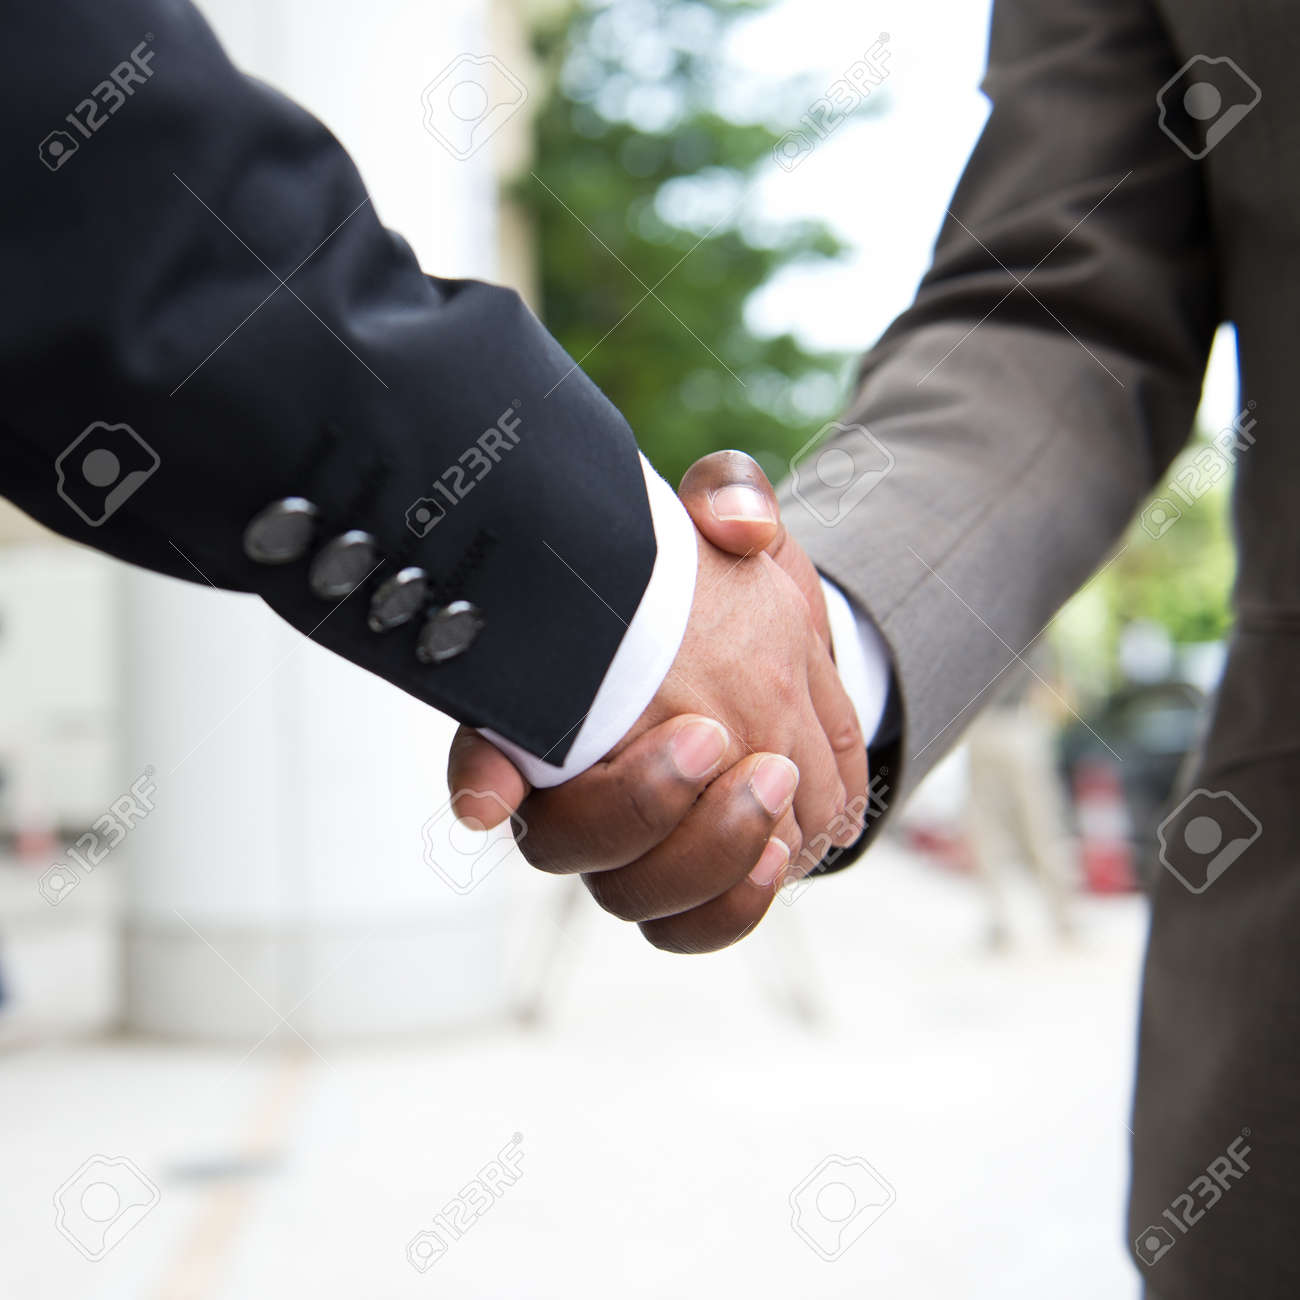 African businessman's hand shaking white businessman's hand  making a business deal. Stock Photo - 33791032